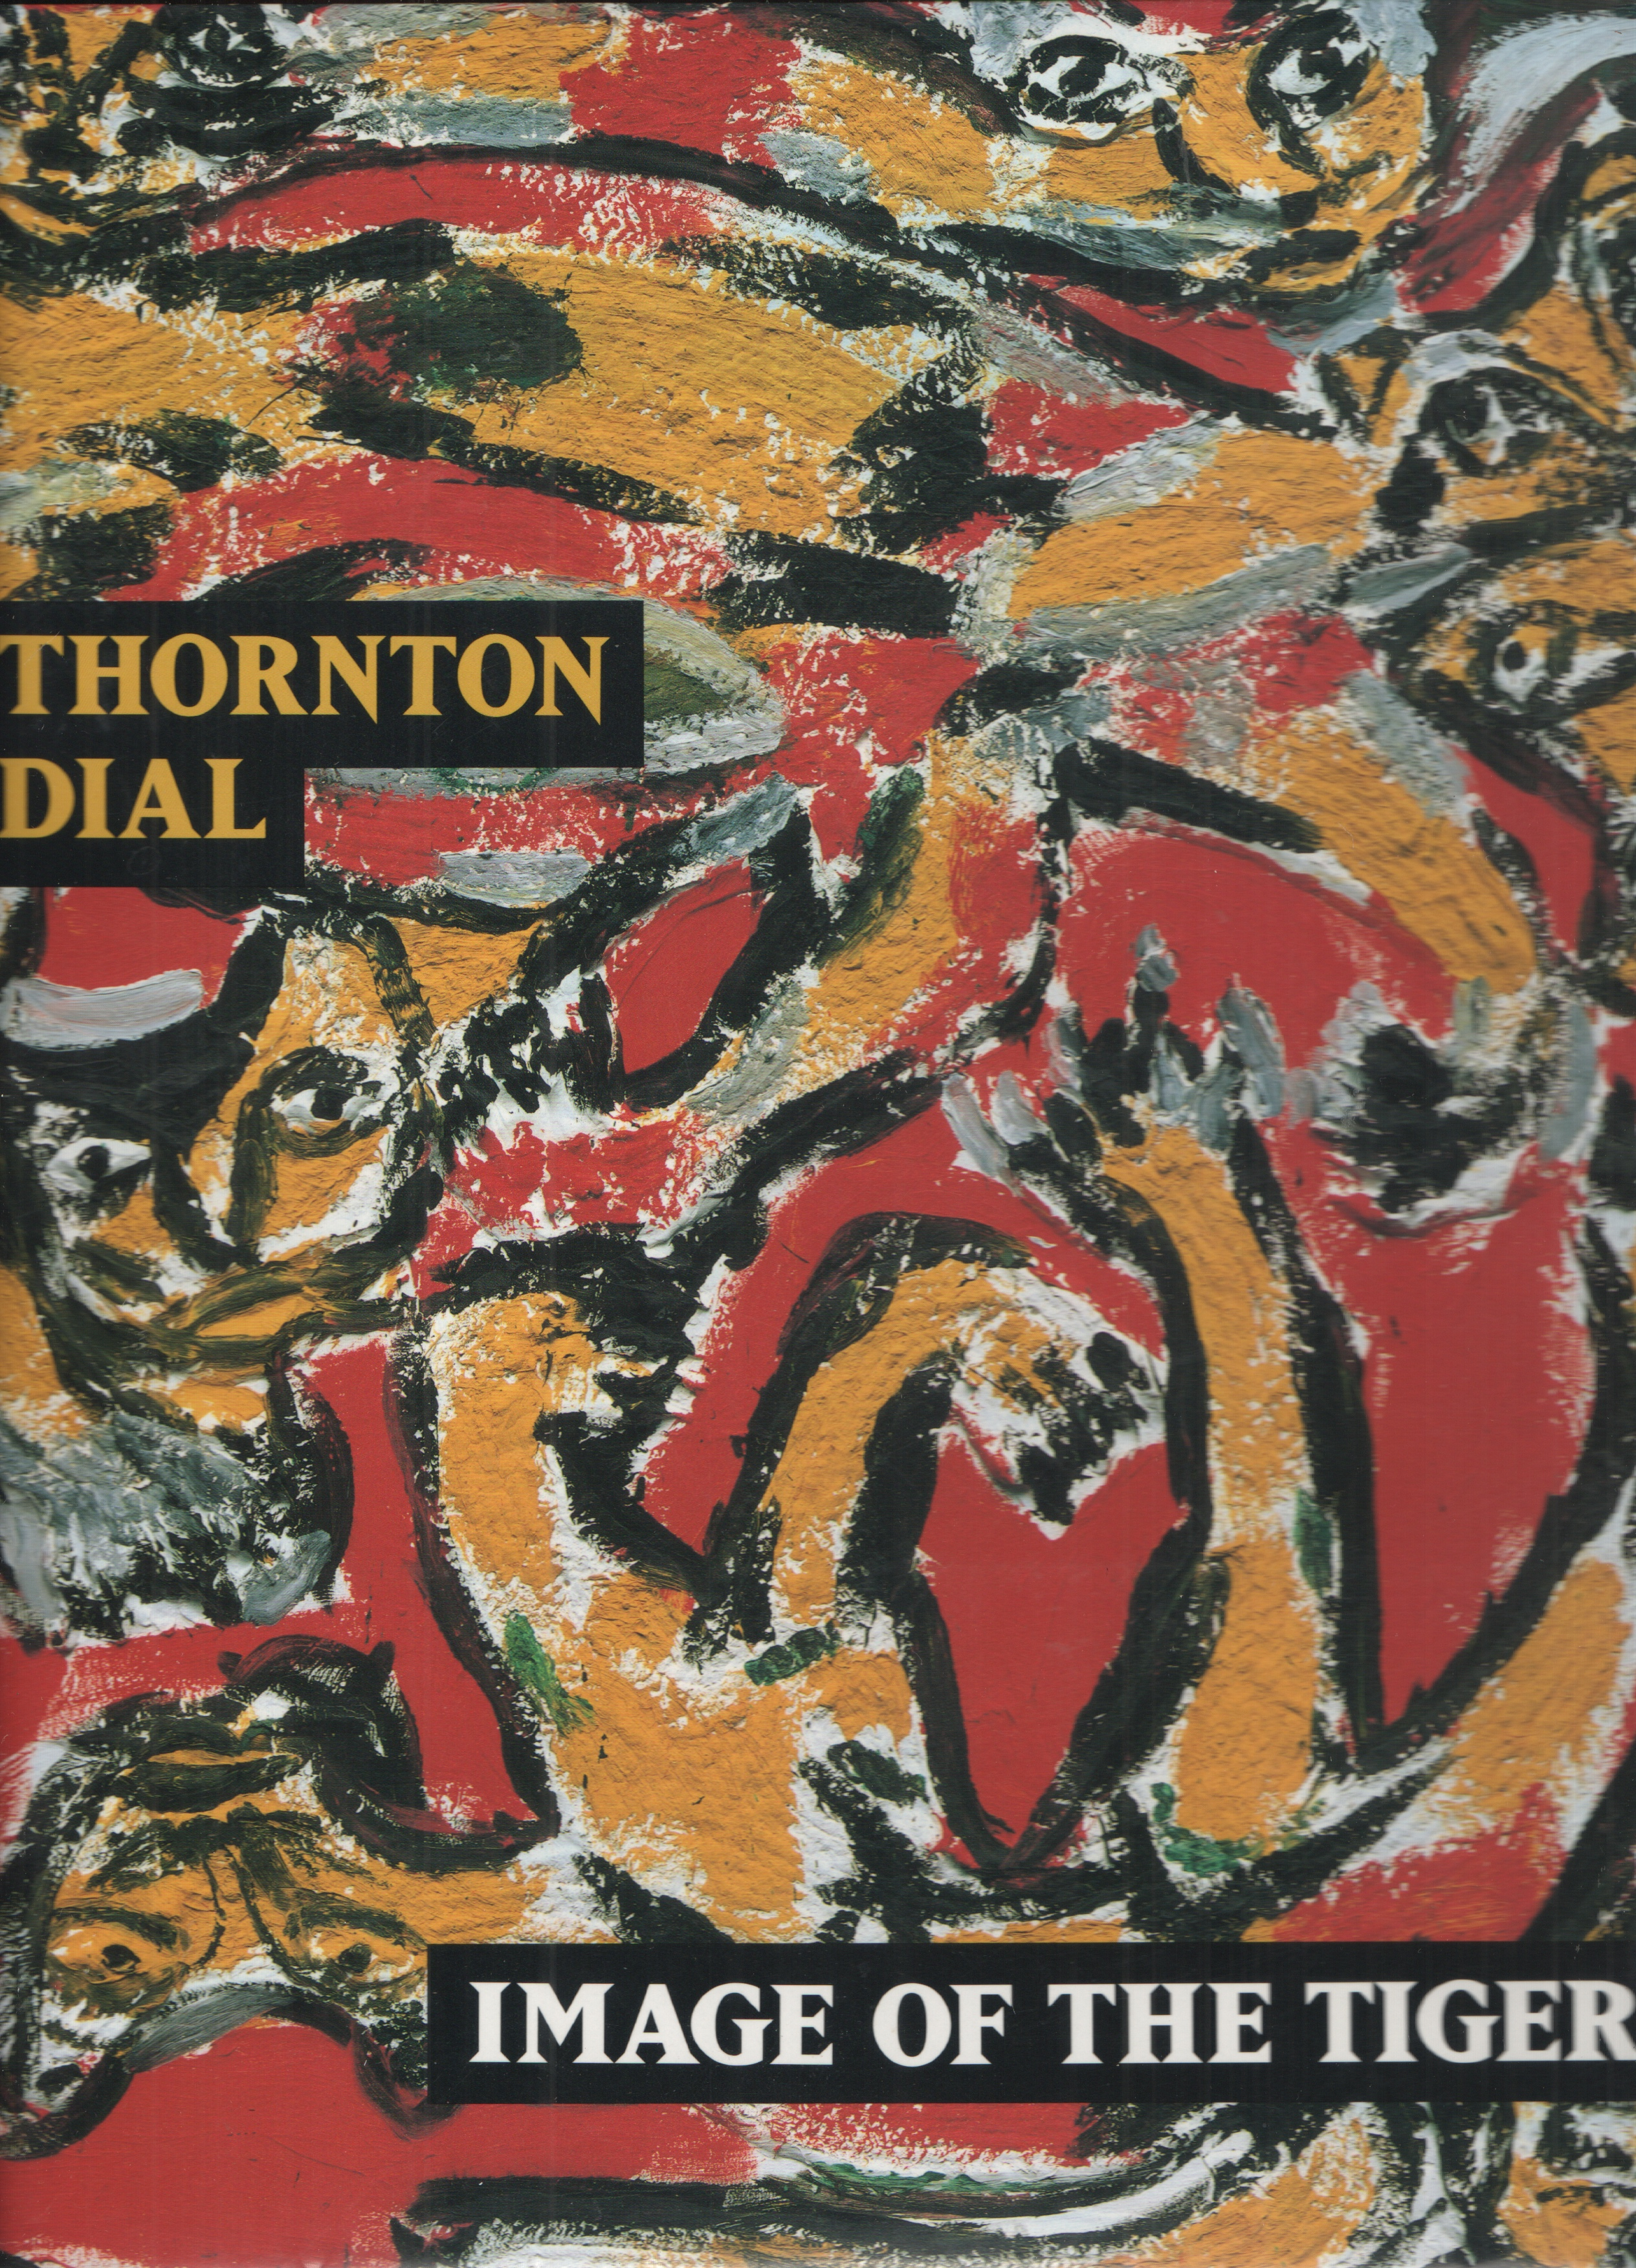 Image for Thornton Dial Image of the Tiger